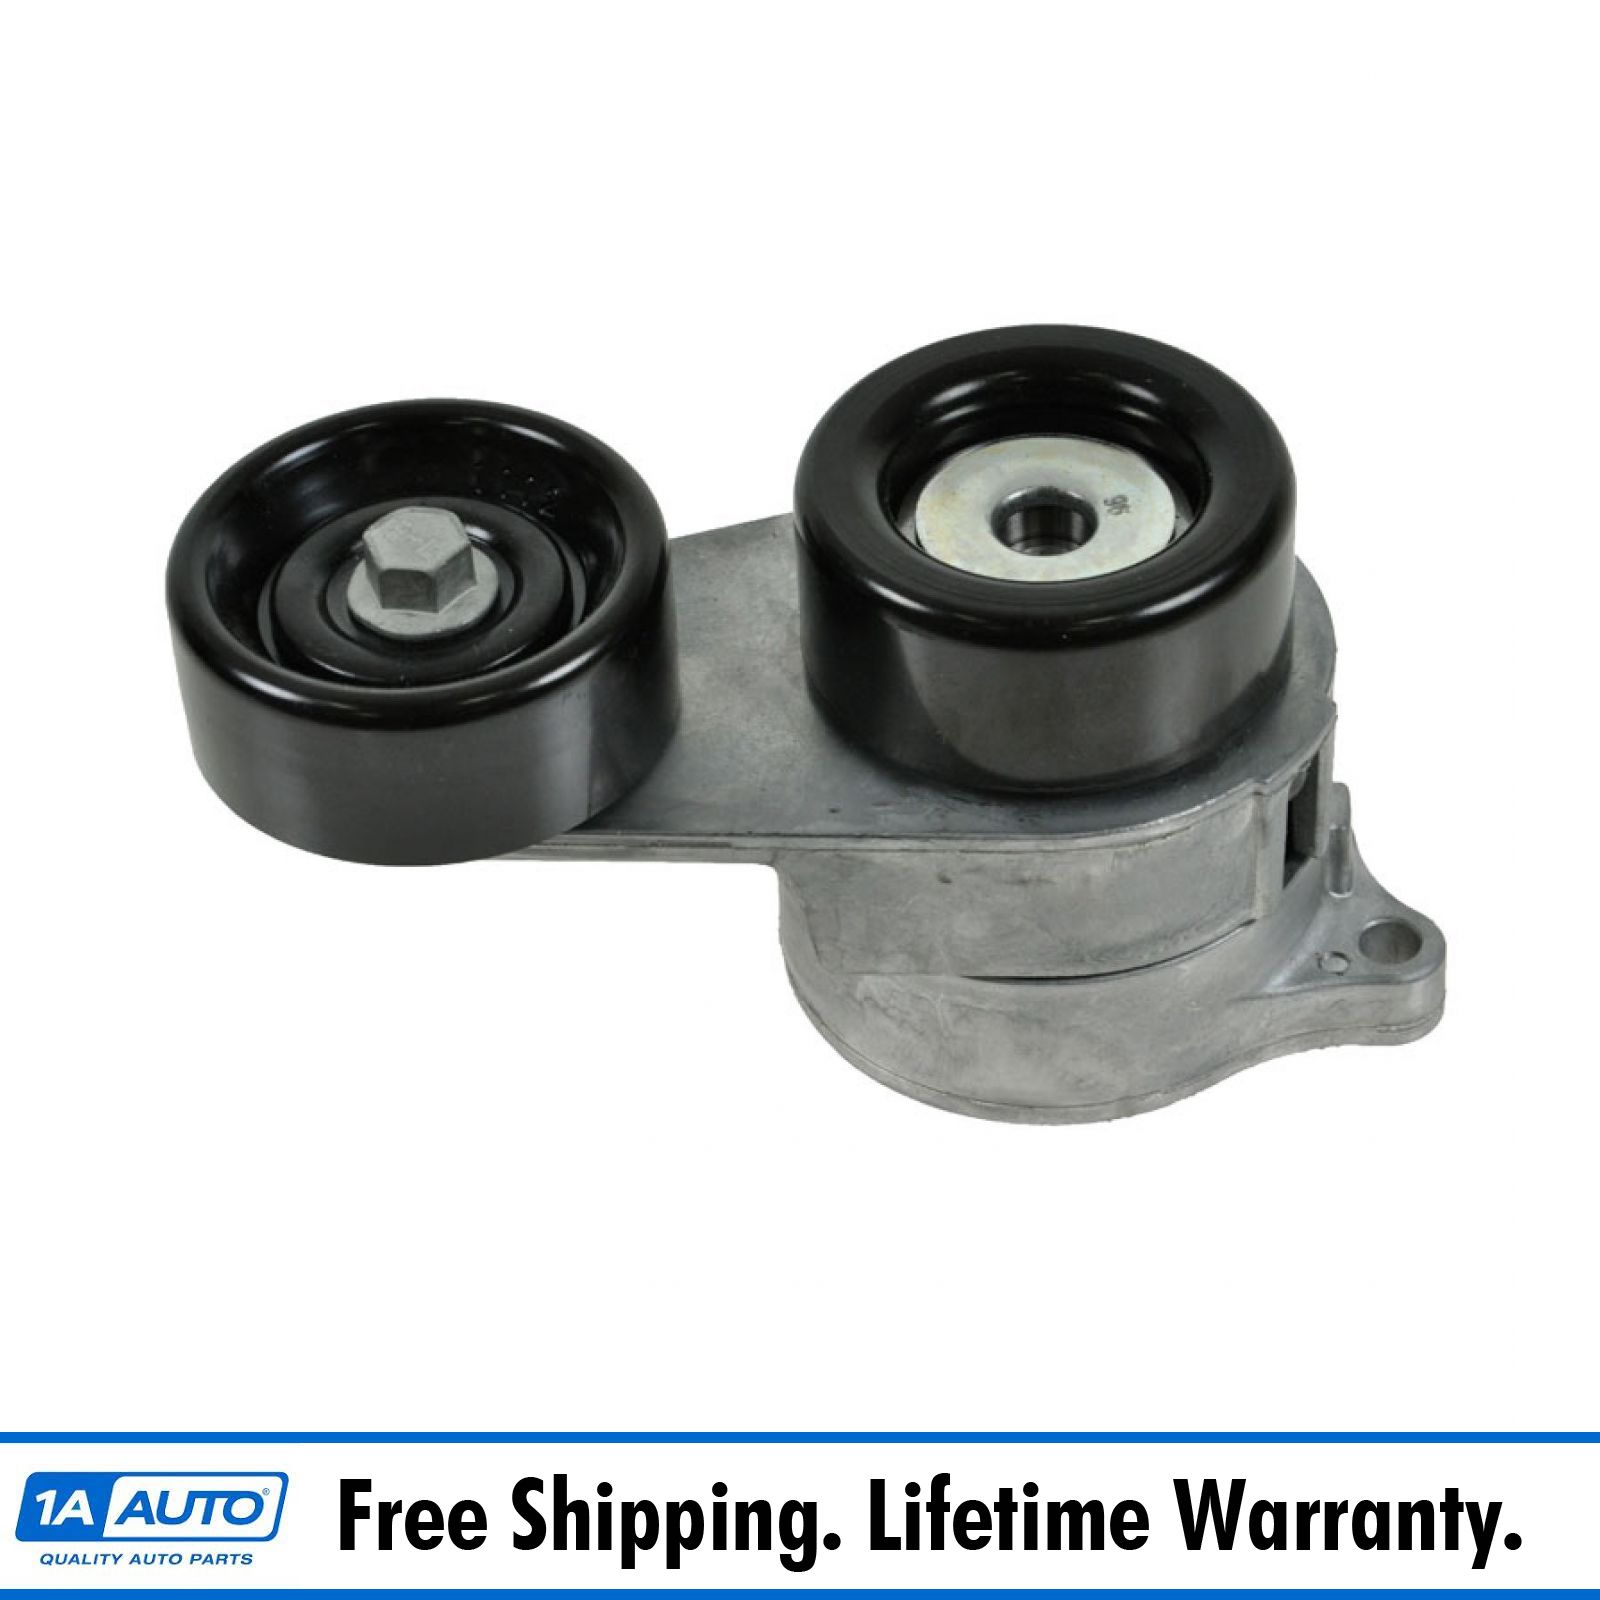 Serpentine Belt Tensioner & Pulley for MDX RL TL Accord Odyssey Pilot  Ridgeline